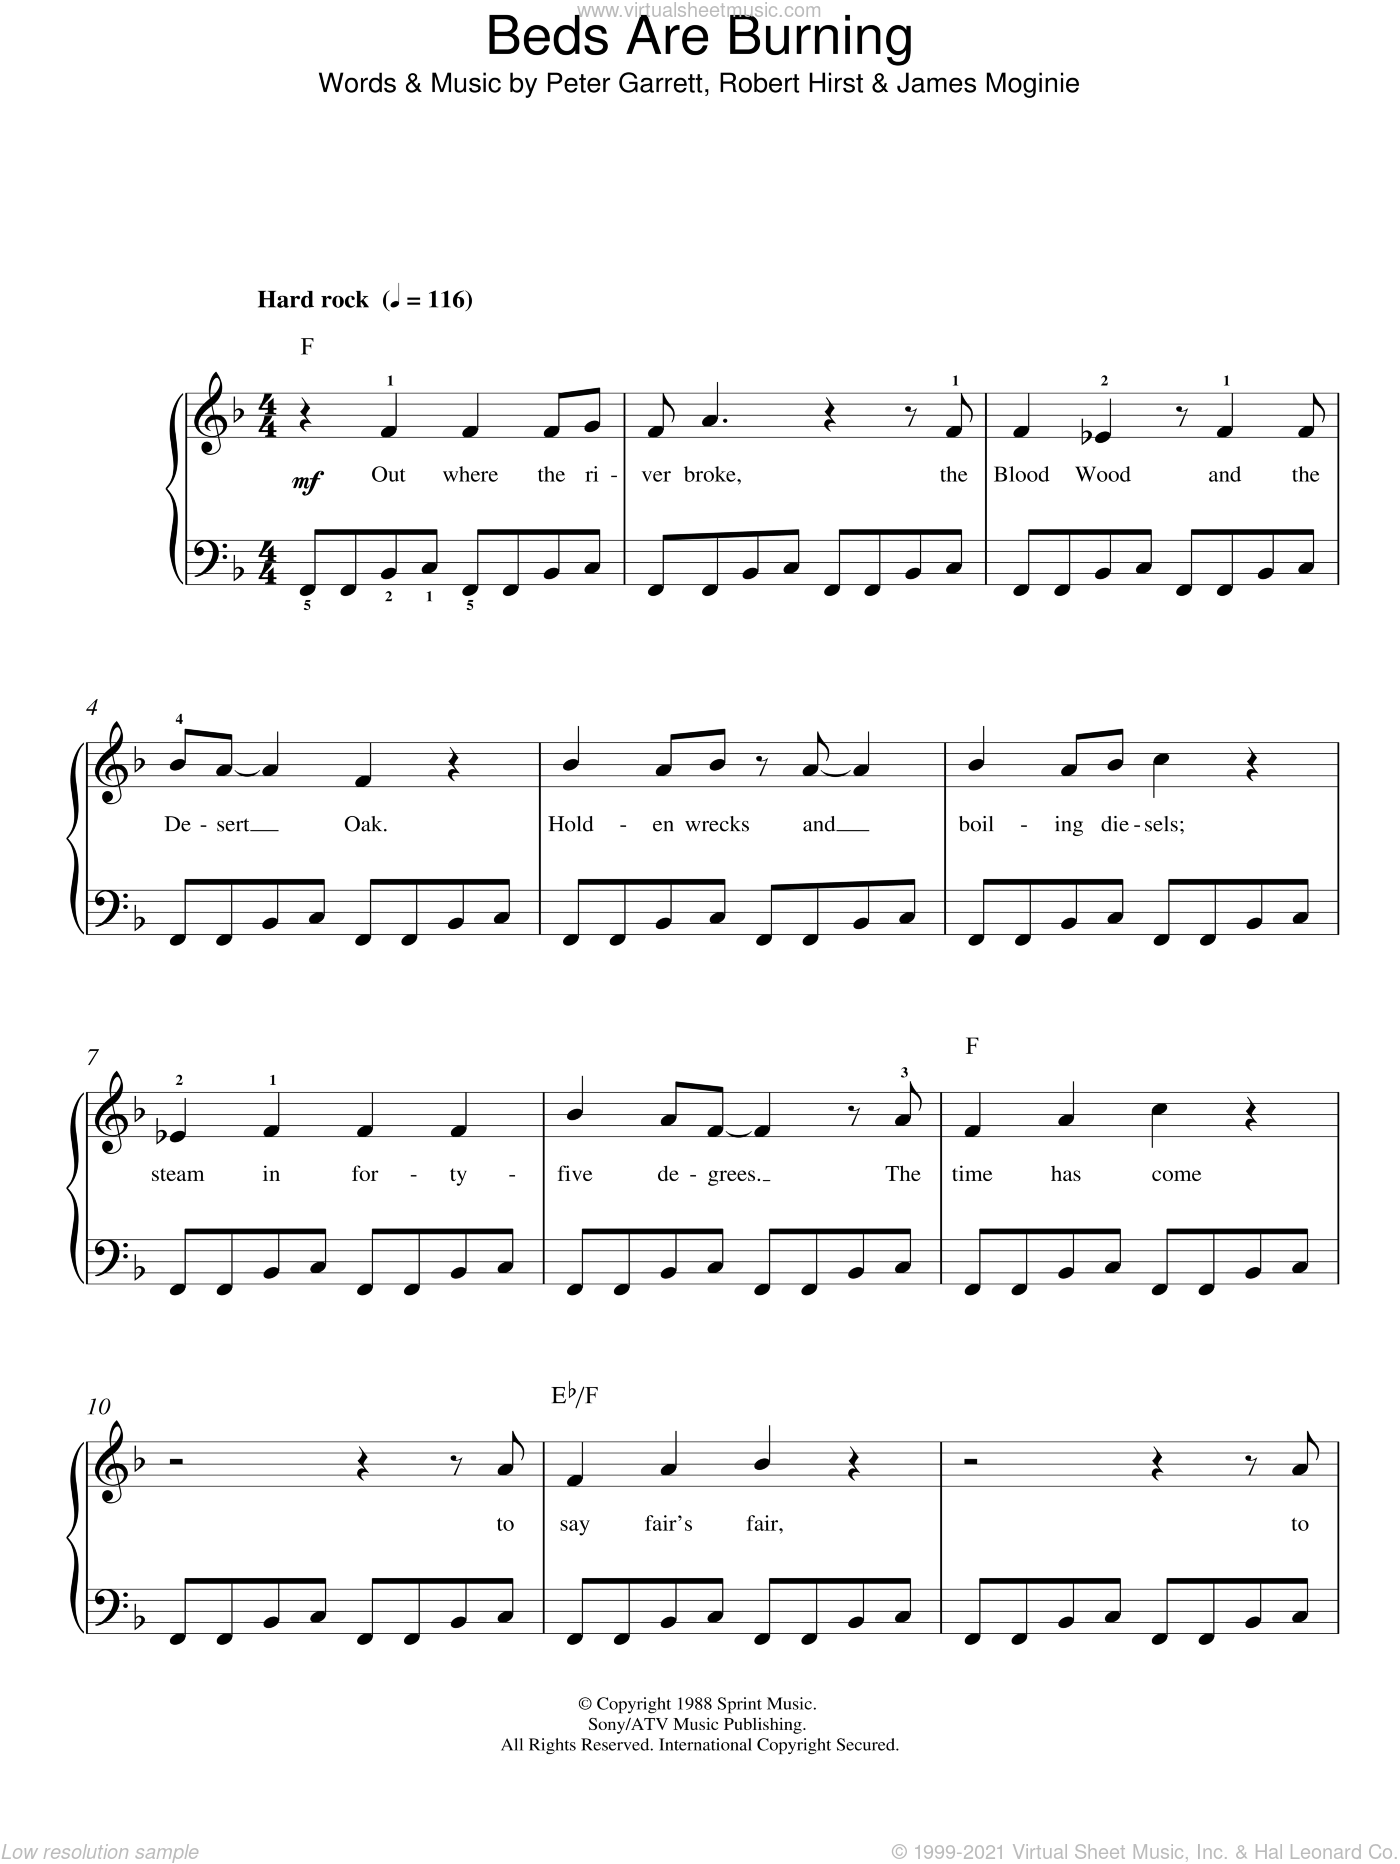 Beds Are Burning sheet music for piano solo by Midnight Oil, Jim Moginie, Peter Garrett and Robert Hirst, easy skill level